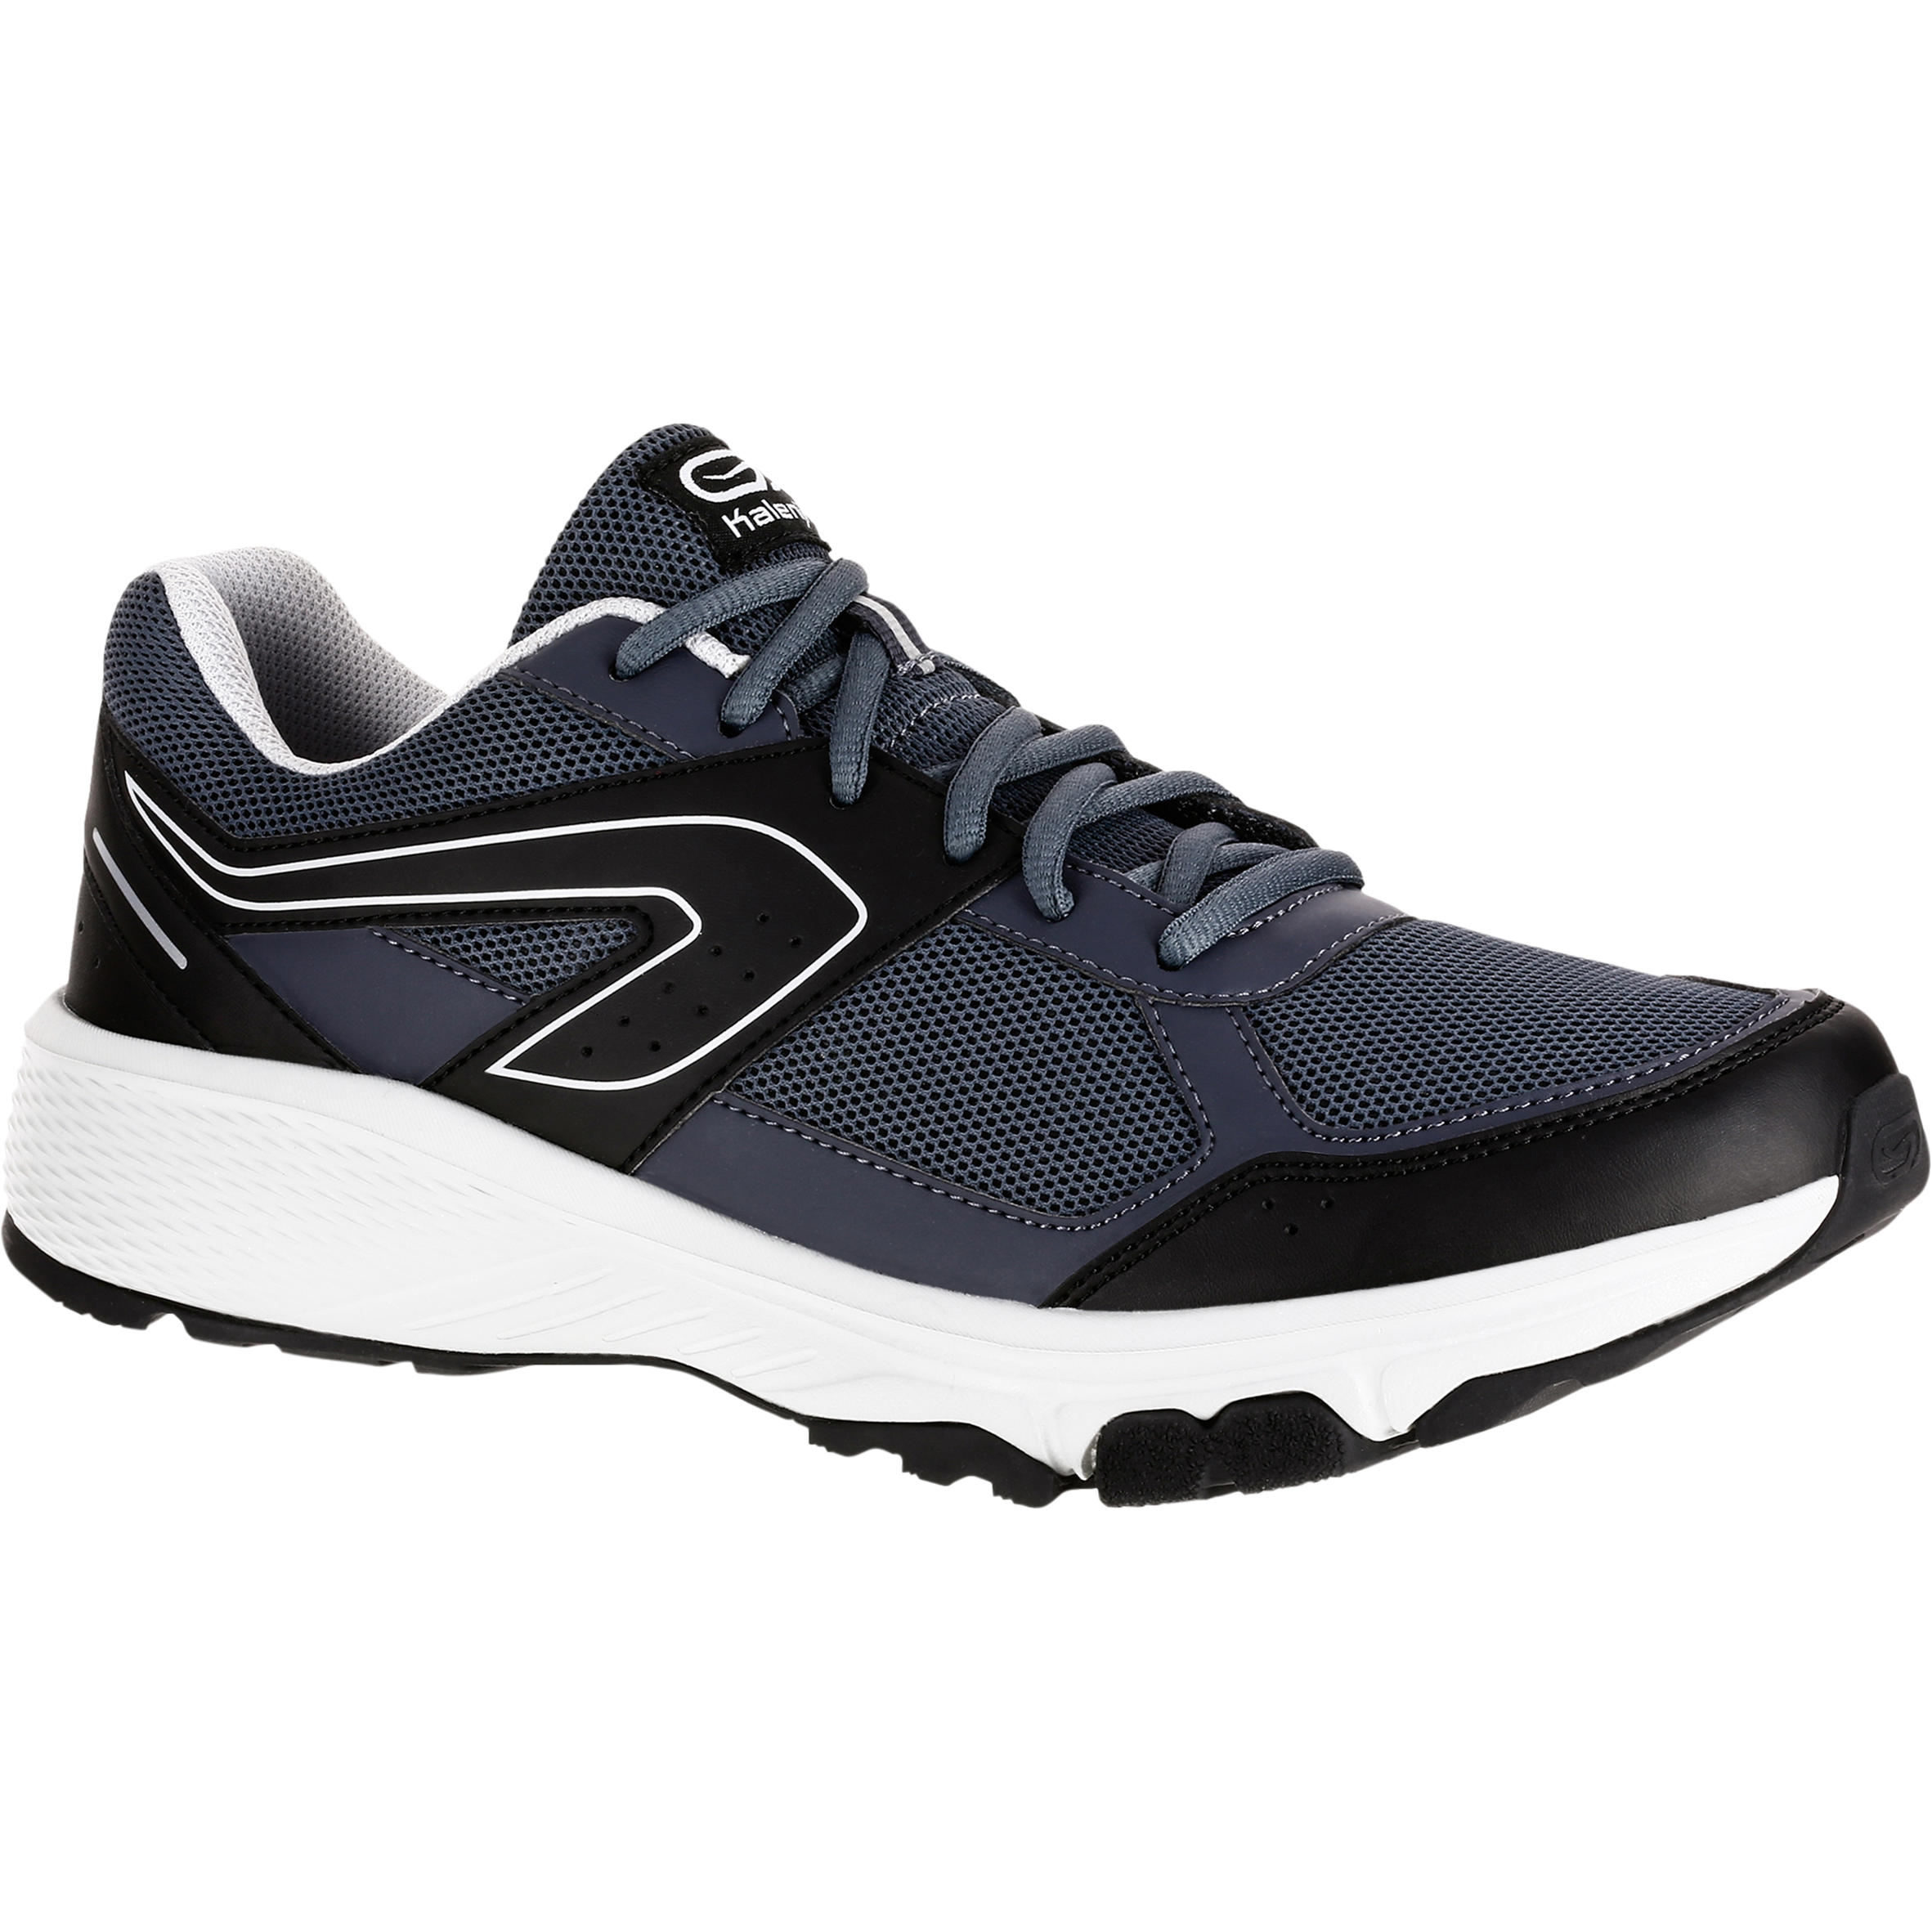 RUN CUSHION GRIP MEN'S RUNNING SHOES